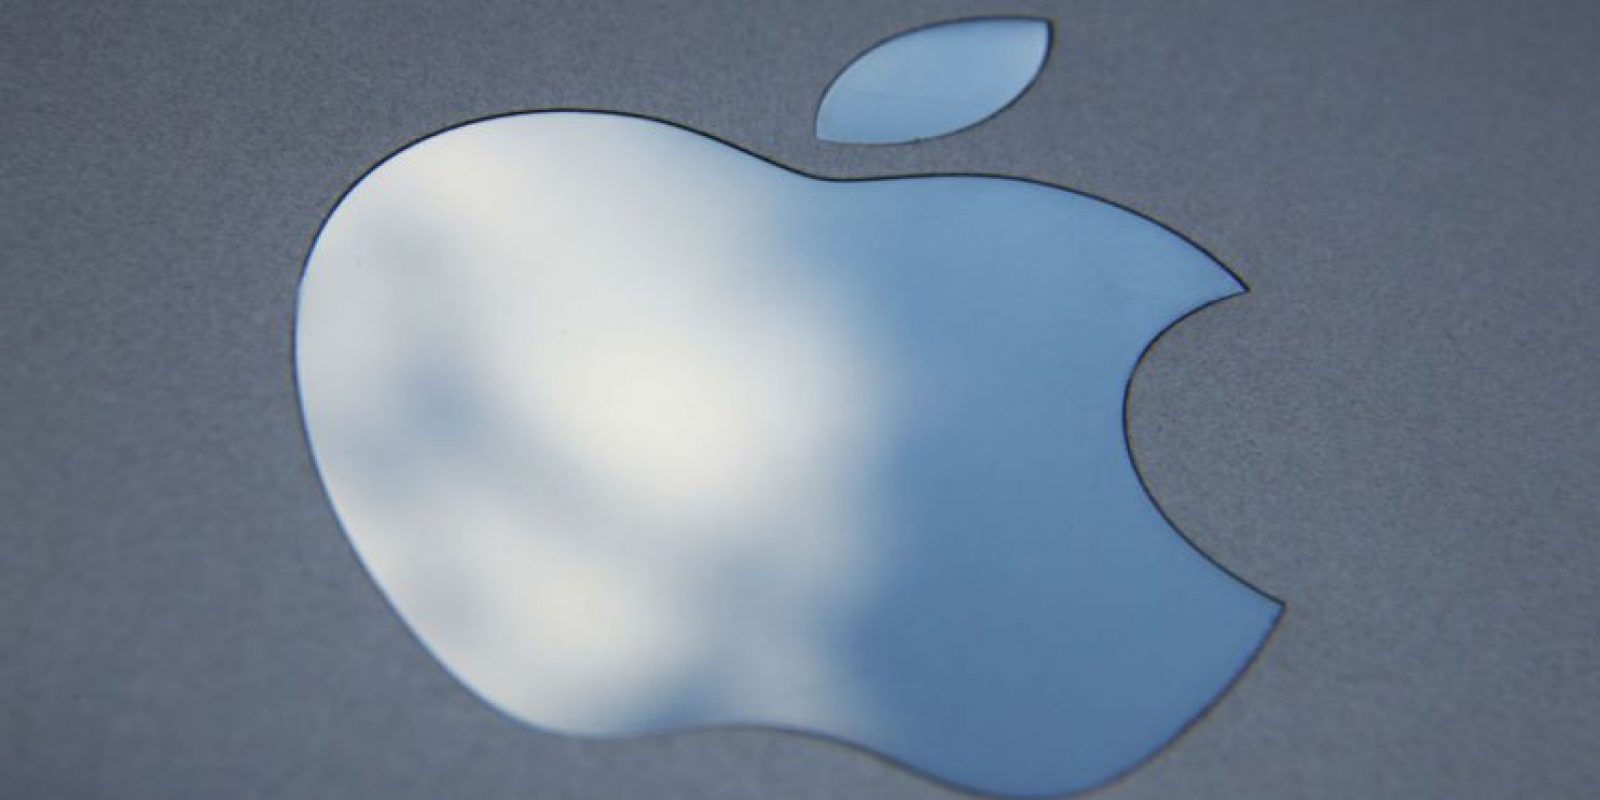 Apple innovará su icónico iPhone con este modelo. Foto: Getty Images